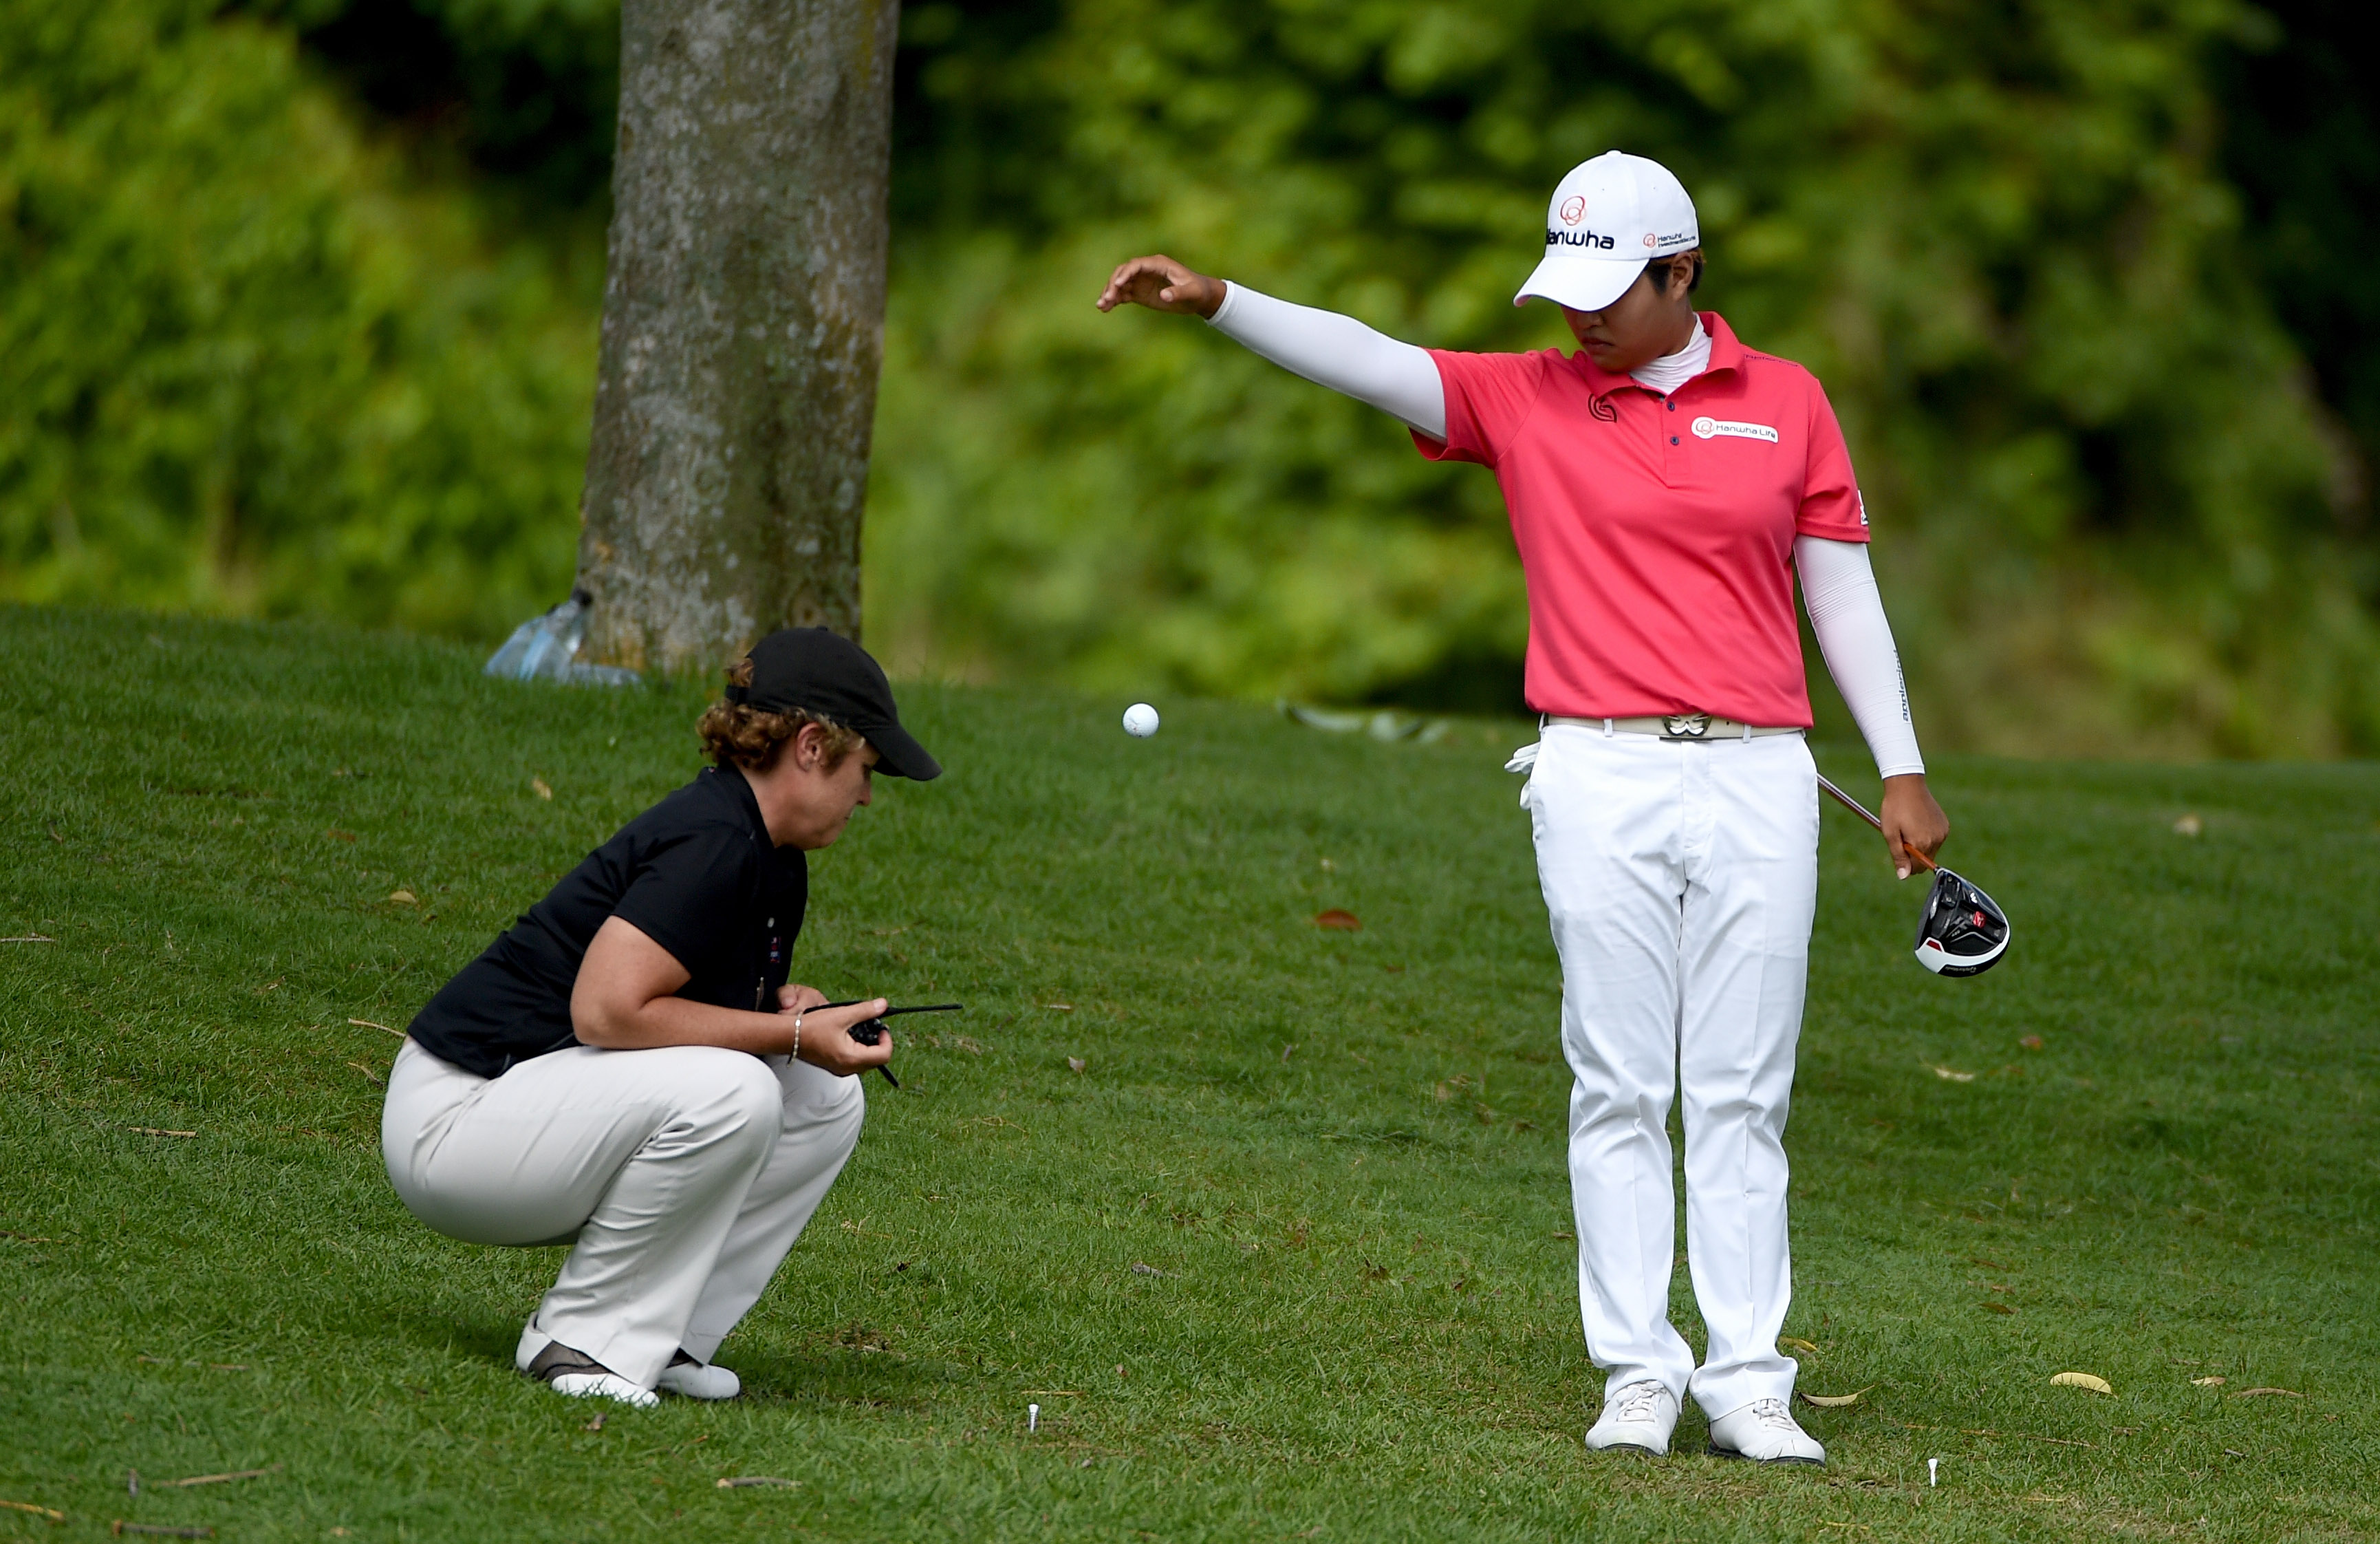 Japan's Haru Normura takes a free drop at an LPGA event in 2016. Golfers will not have to drop from shoulder height starting in 2019. (Photo by Ross Kinnaird/Getty Images)